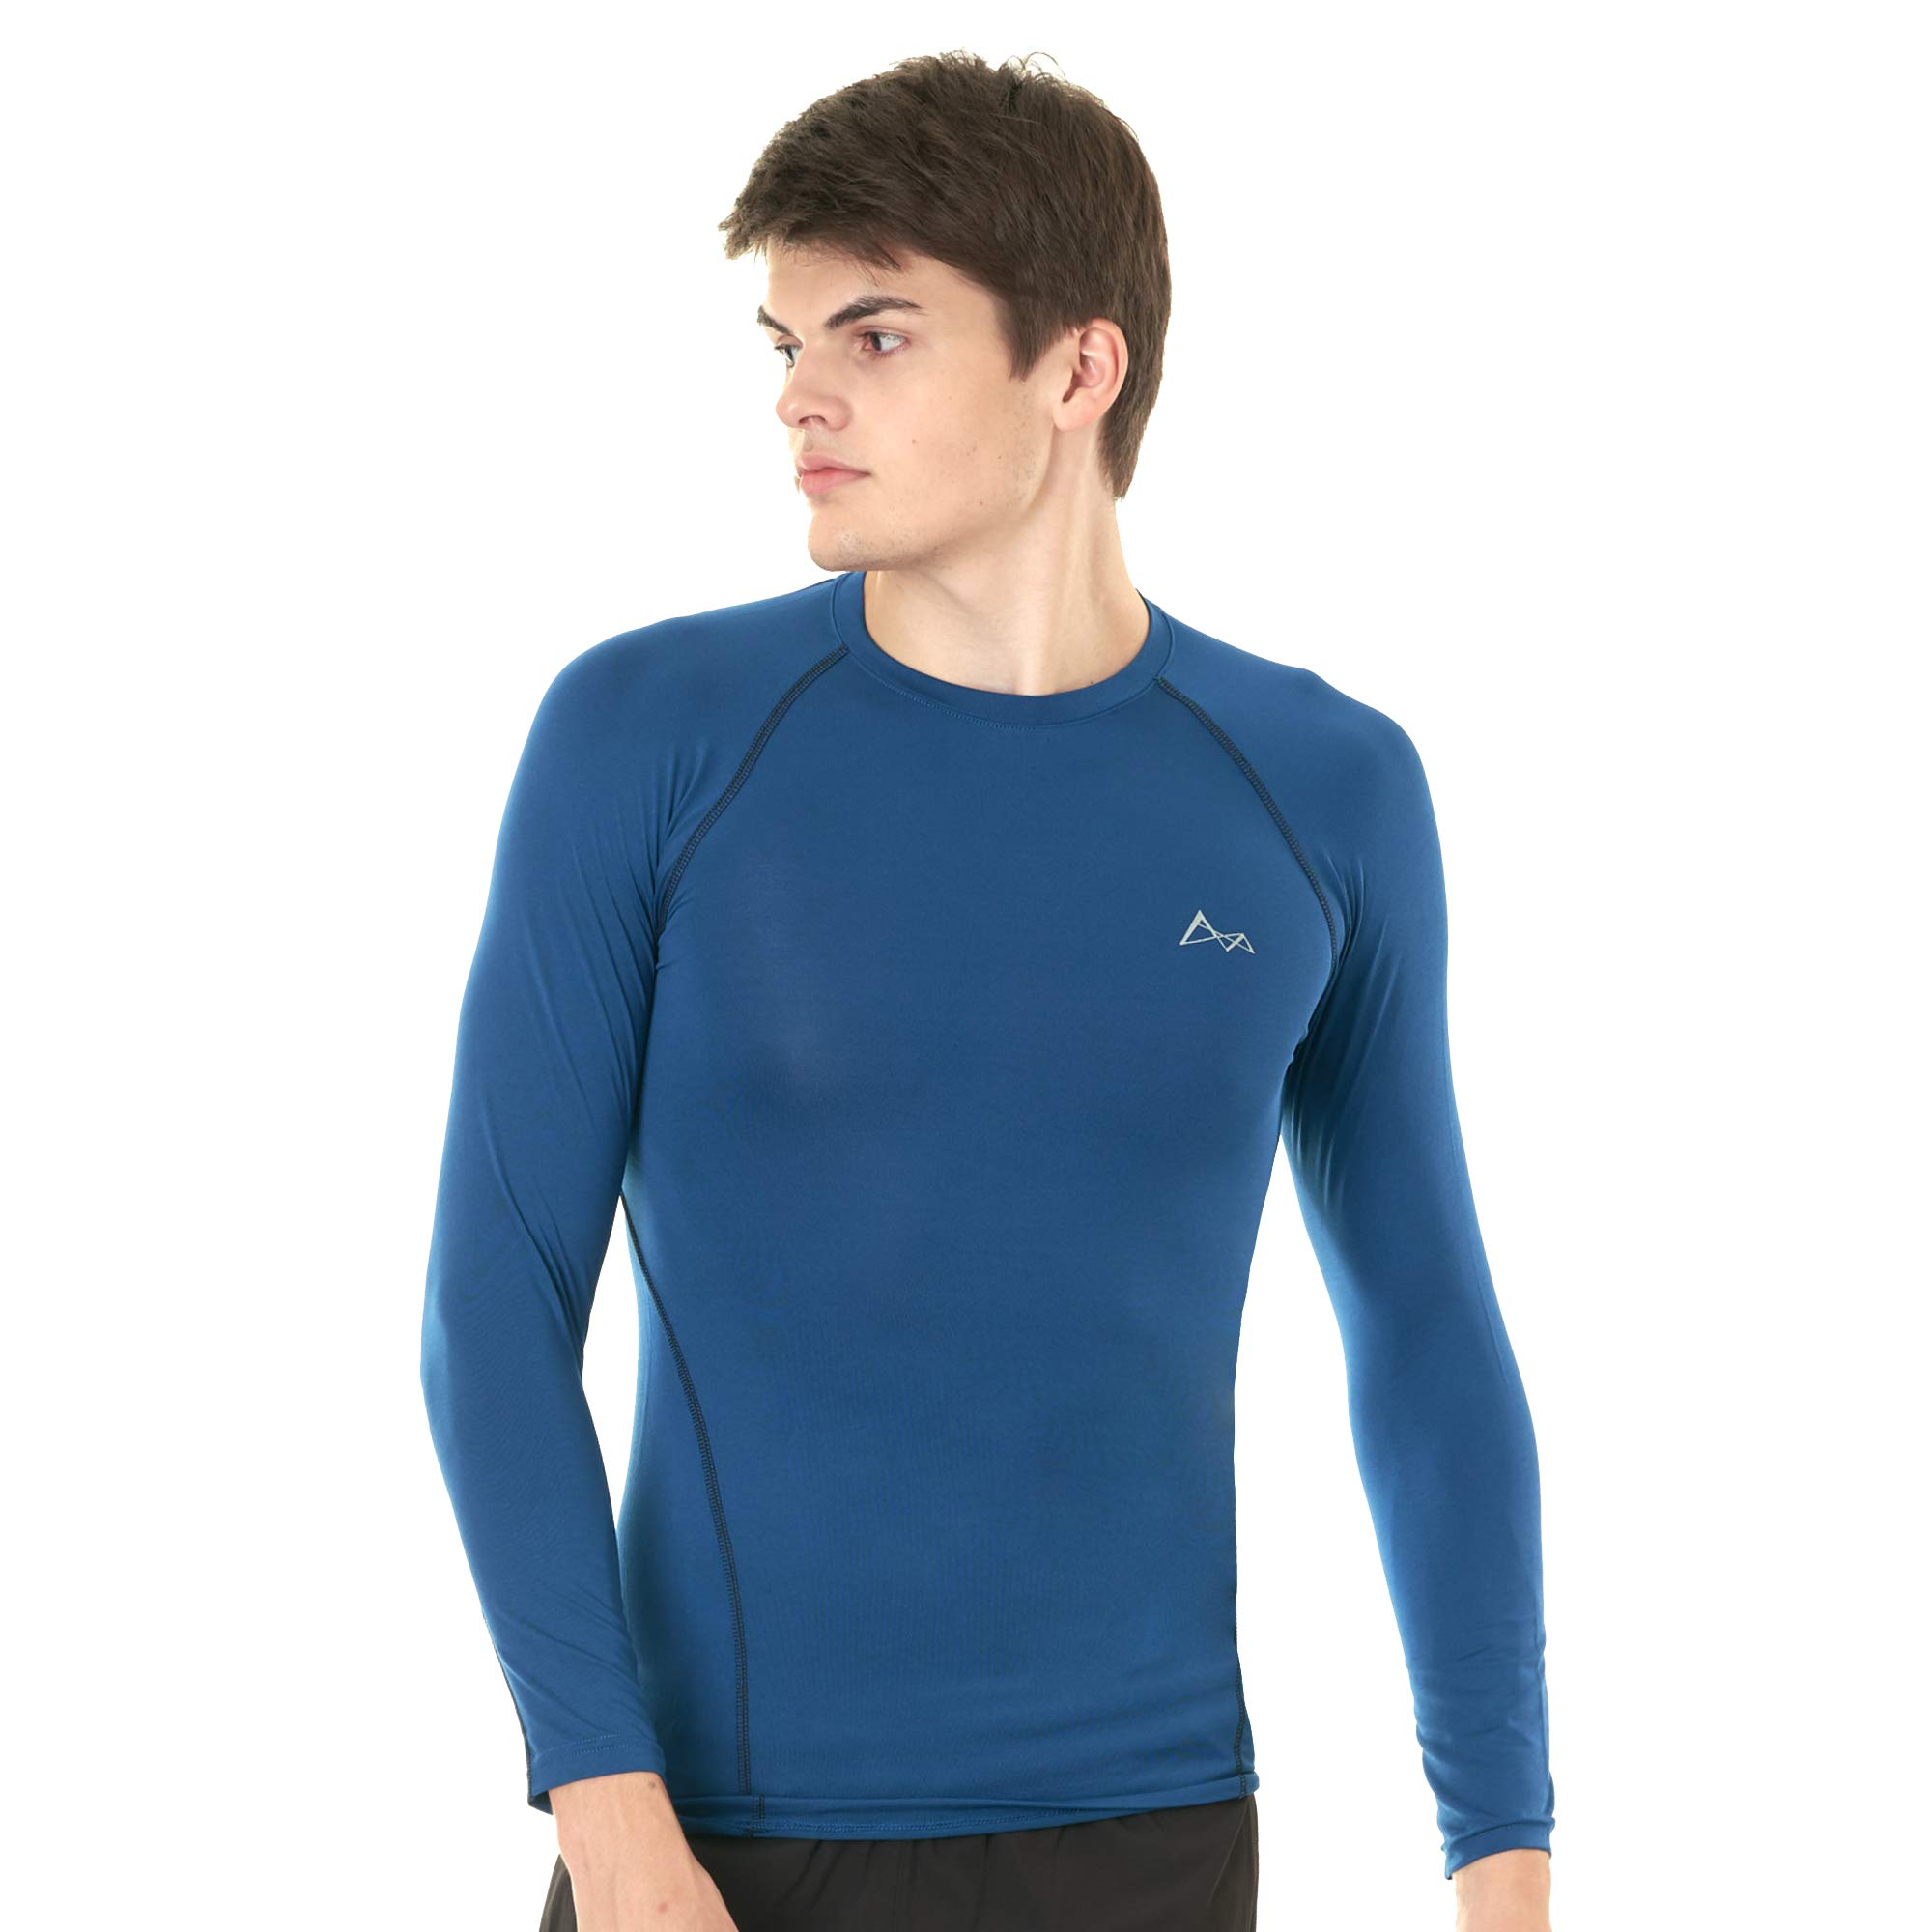 Turaag Men's Baselayer Long Sleeve T-Shirt for Yoga, Running & Gym